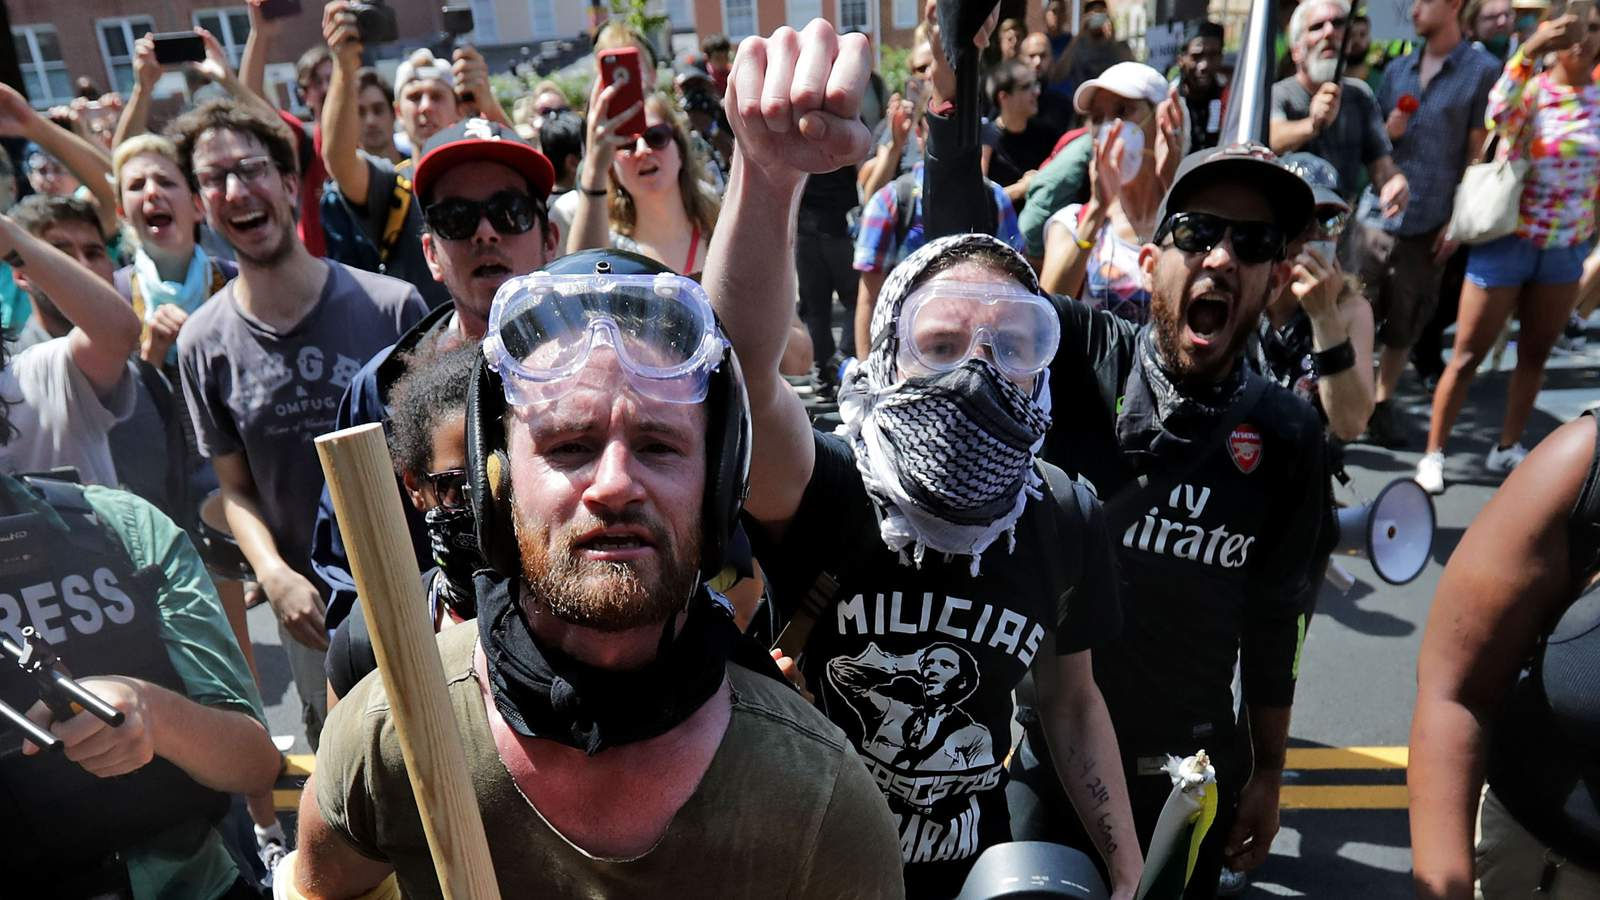 Here's what you need to know about Antifa